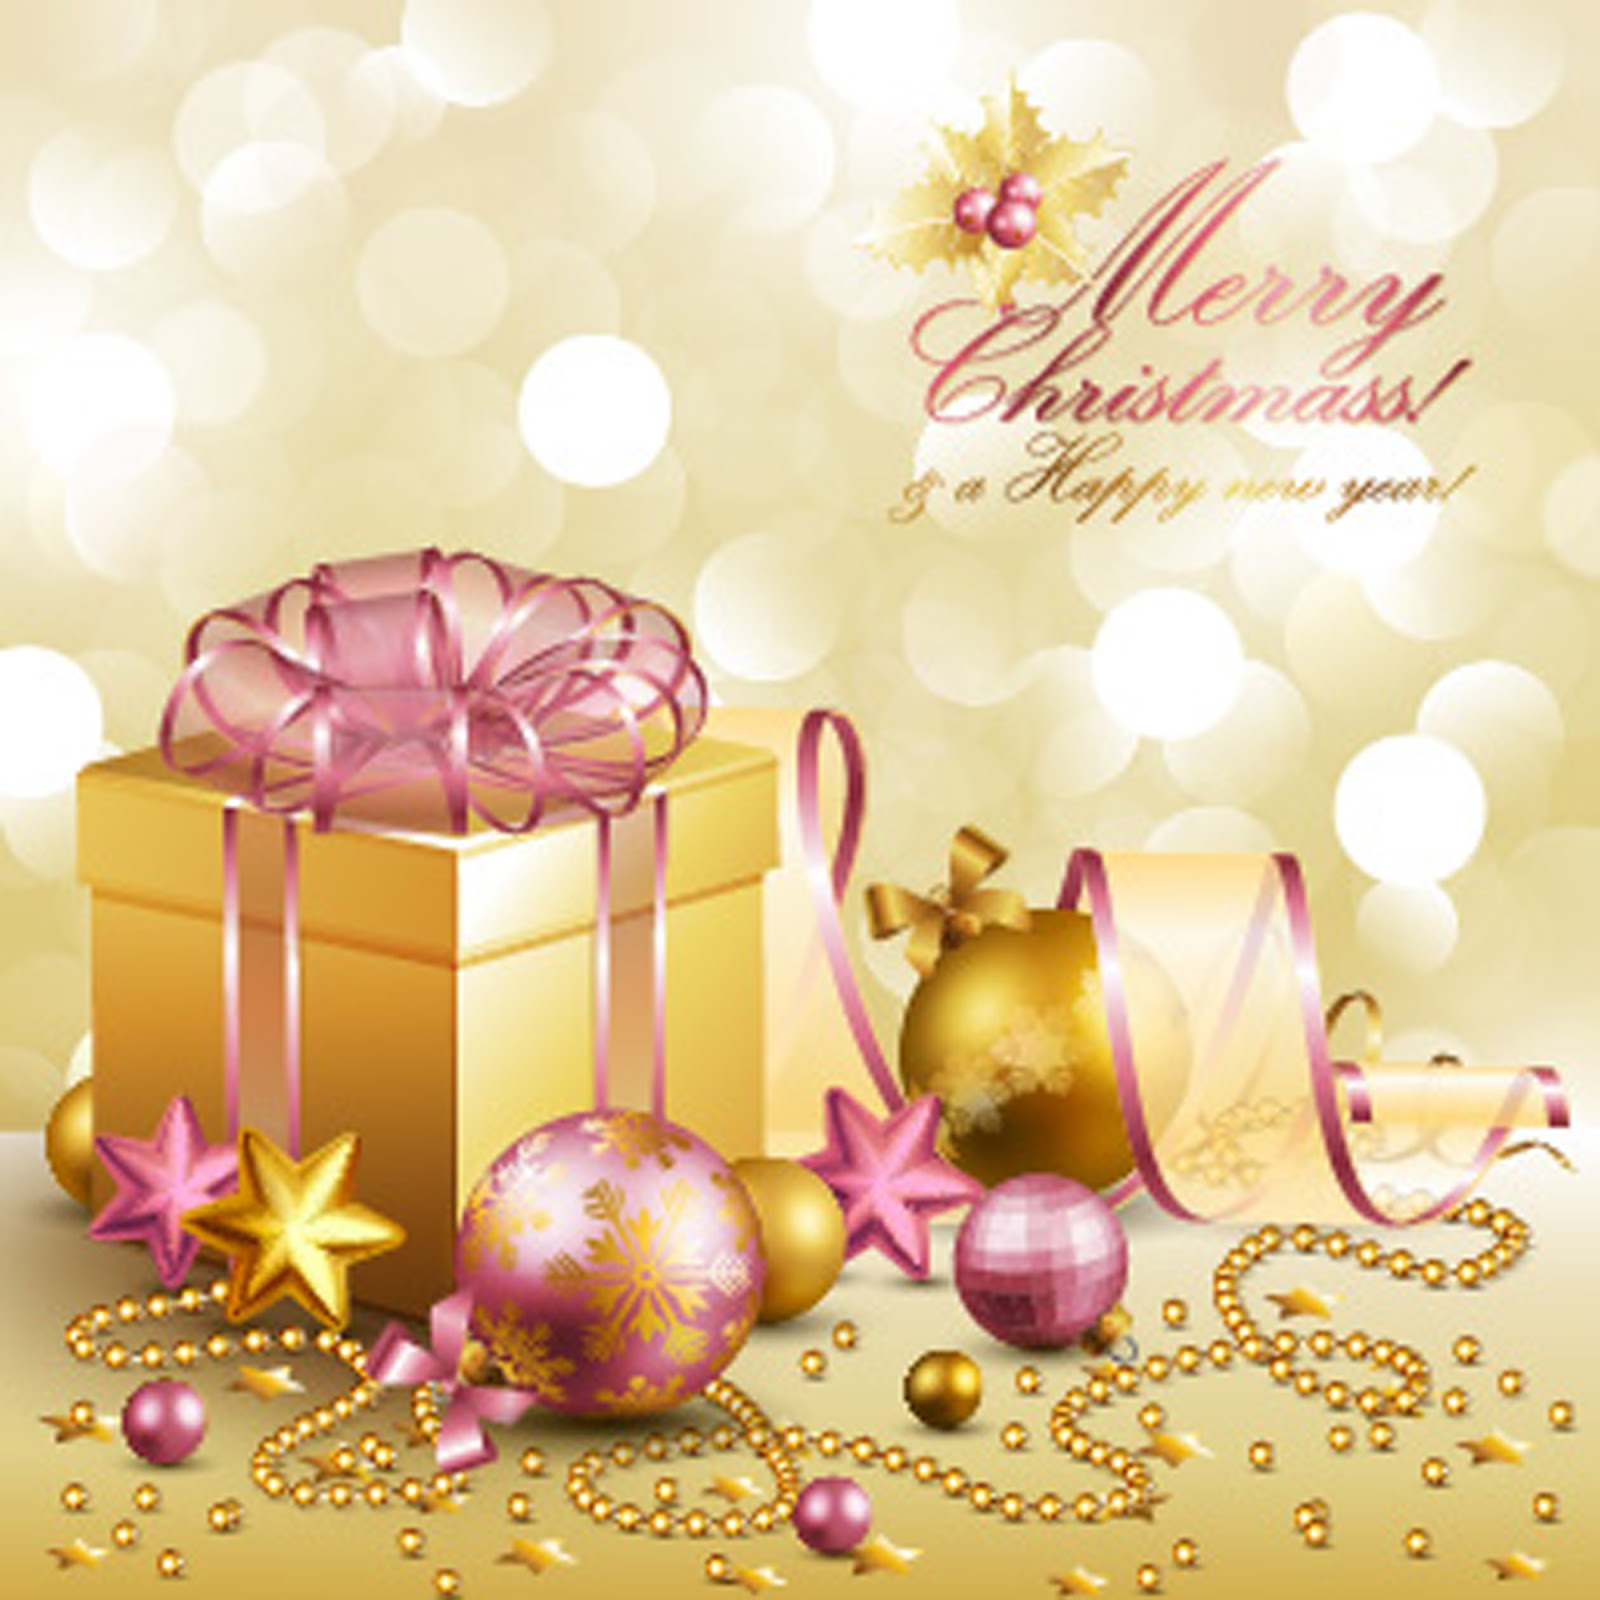 Free Christmas Card Templates Photos In Hd Free Hd Widescreen